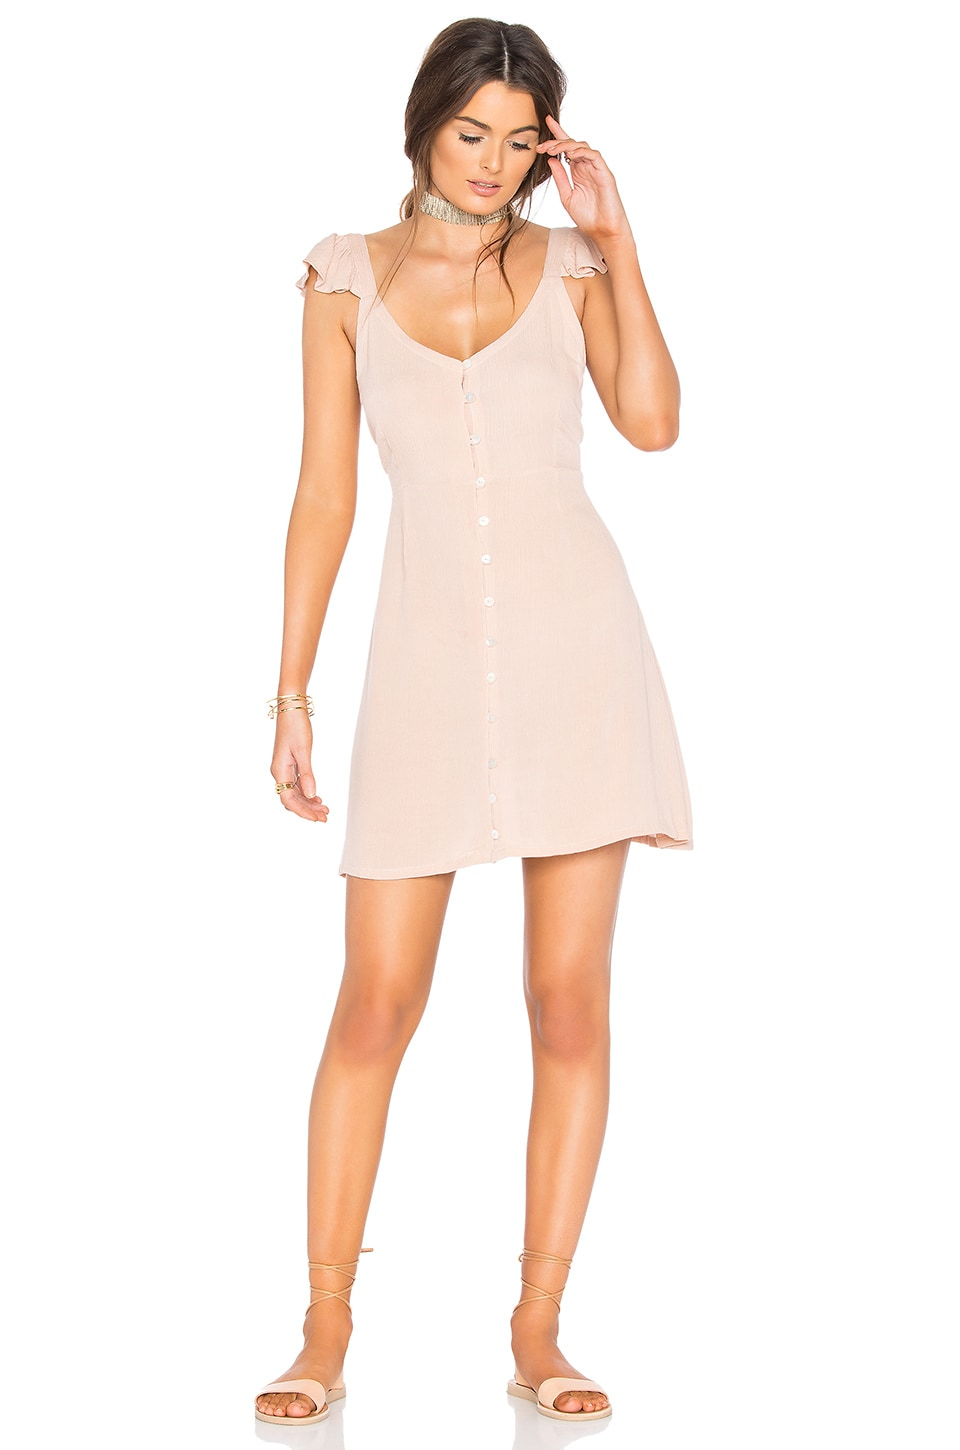 Cleobella Vinita Short Dress in Blush